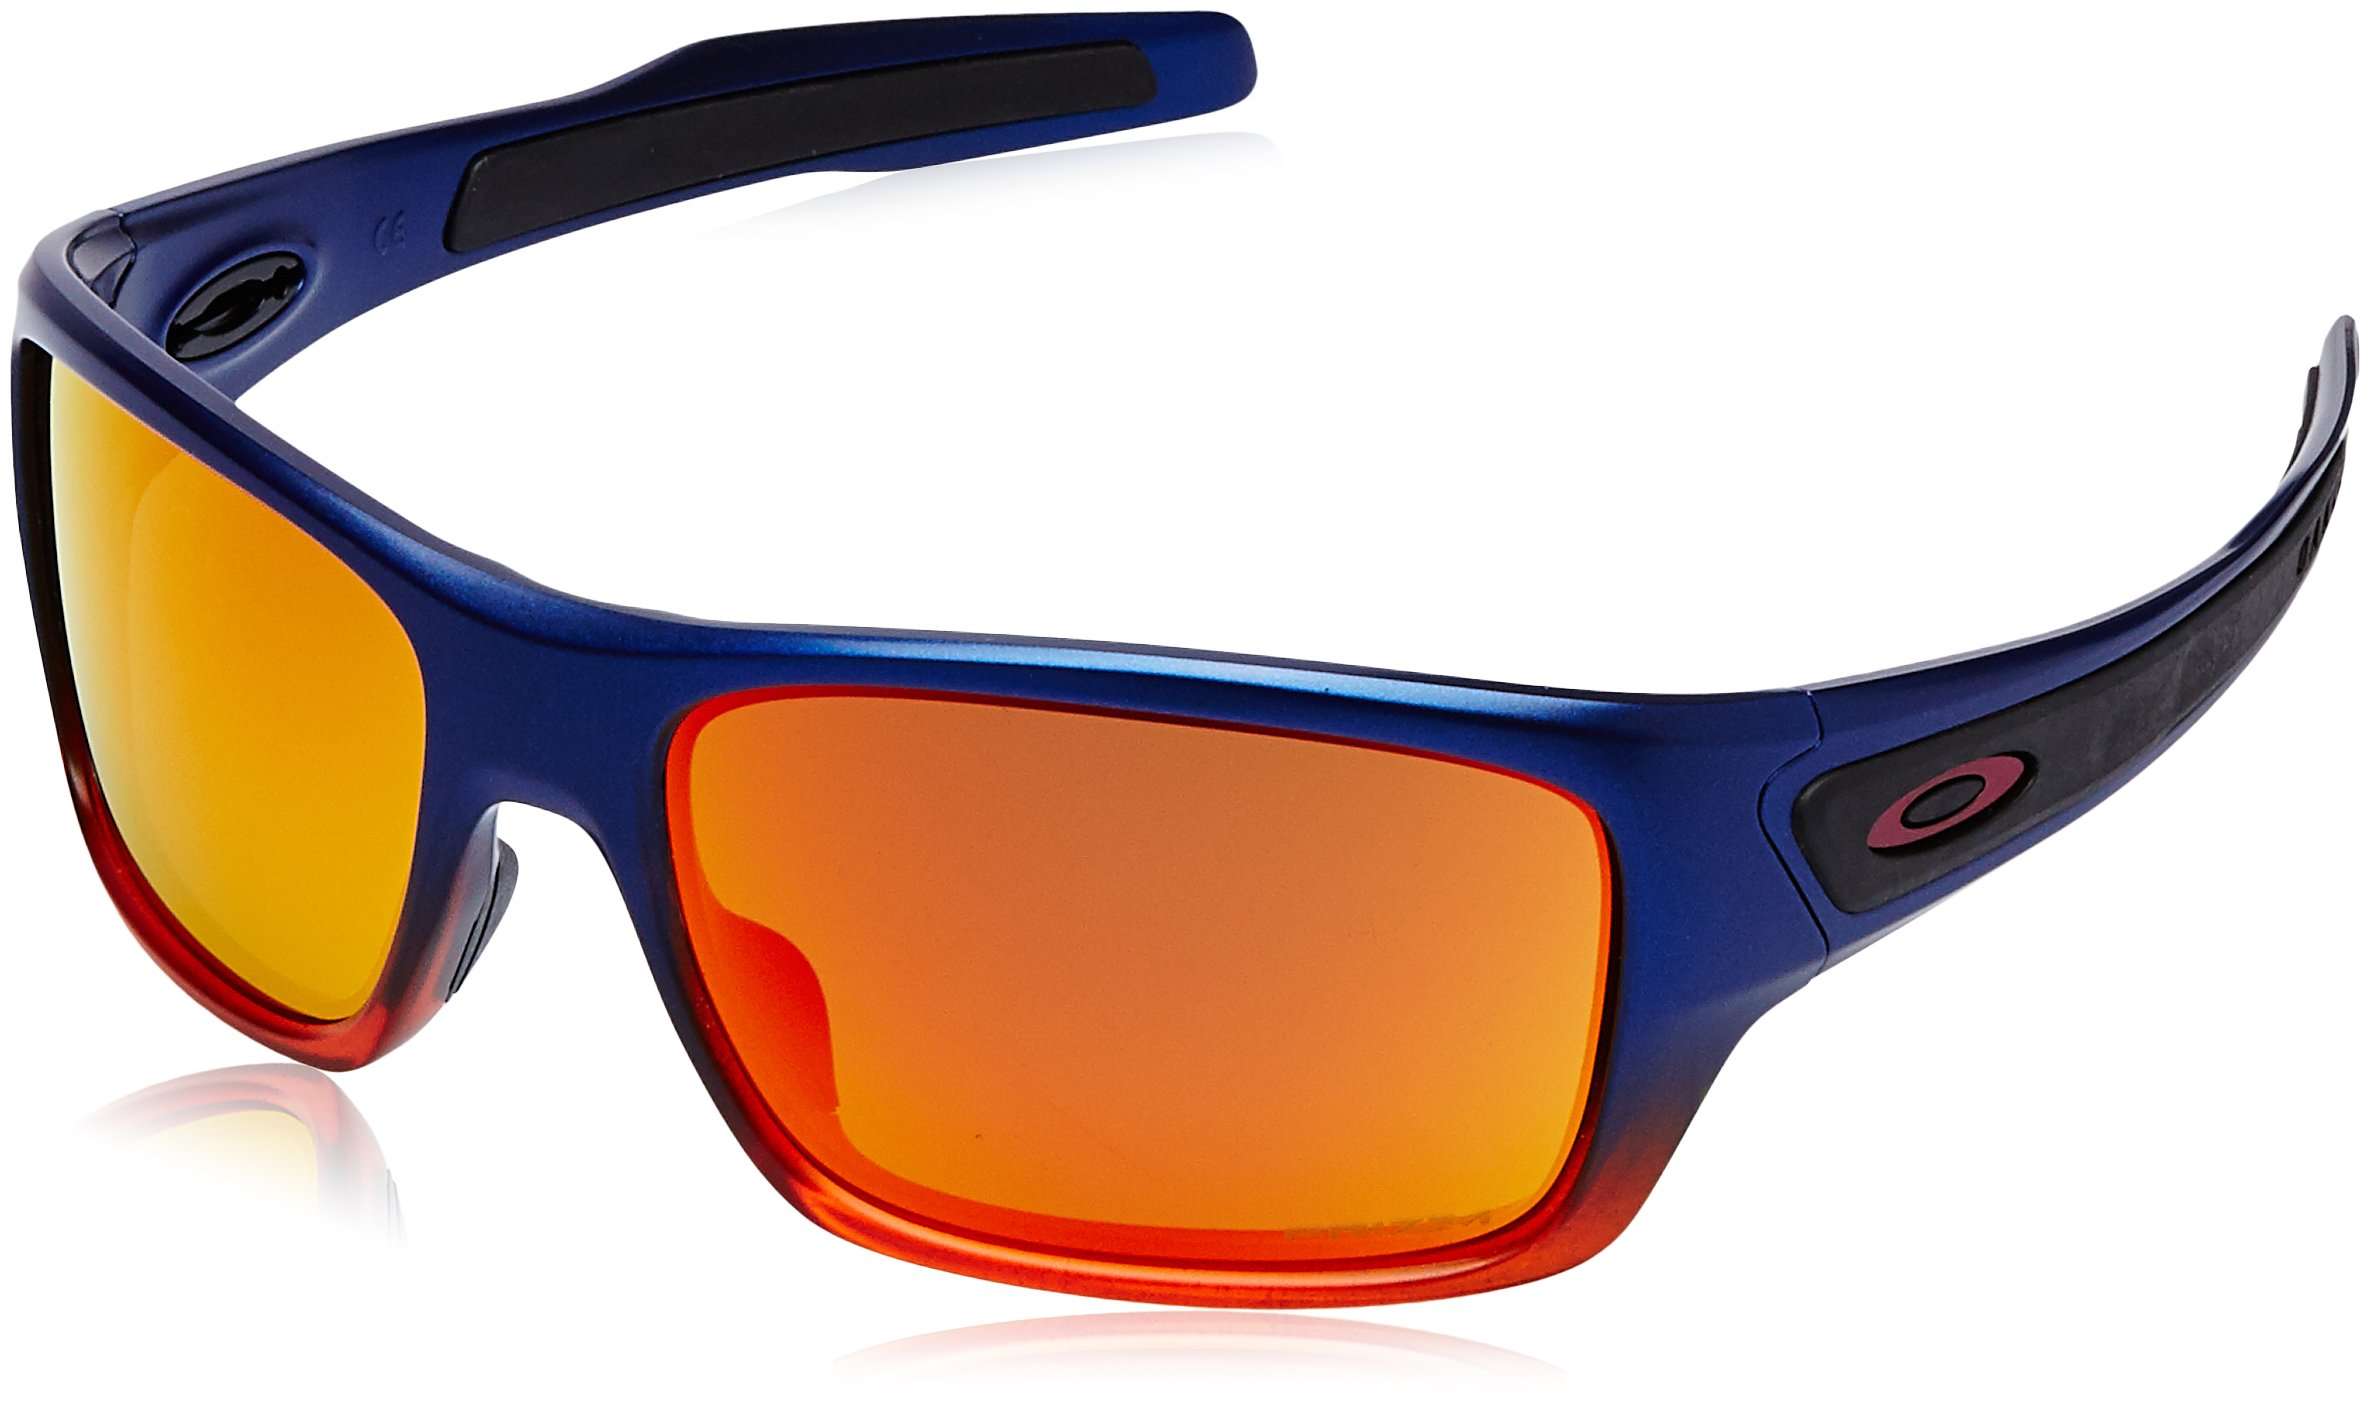 Oakley Men's Turbine Non-Polarized Iridium Rectangular Sunglasses ORANGE POP FADE 65.0 mm